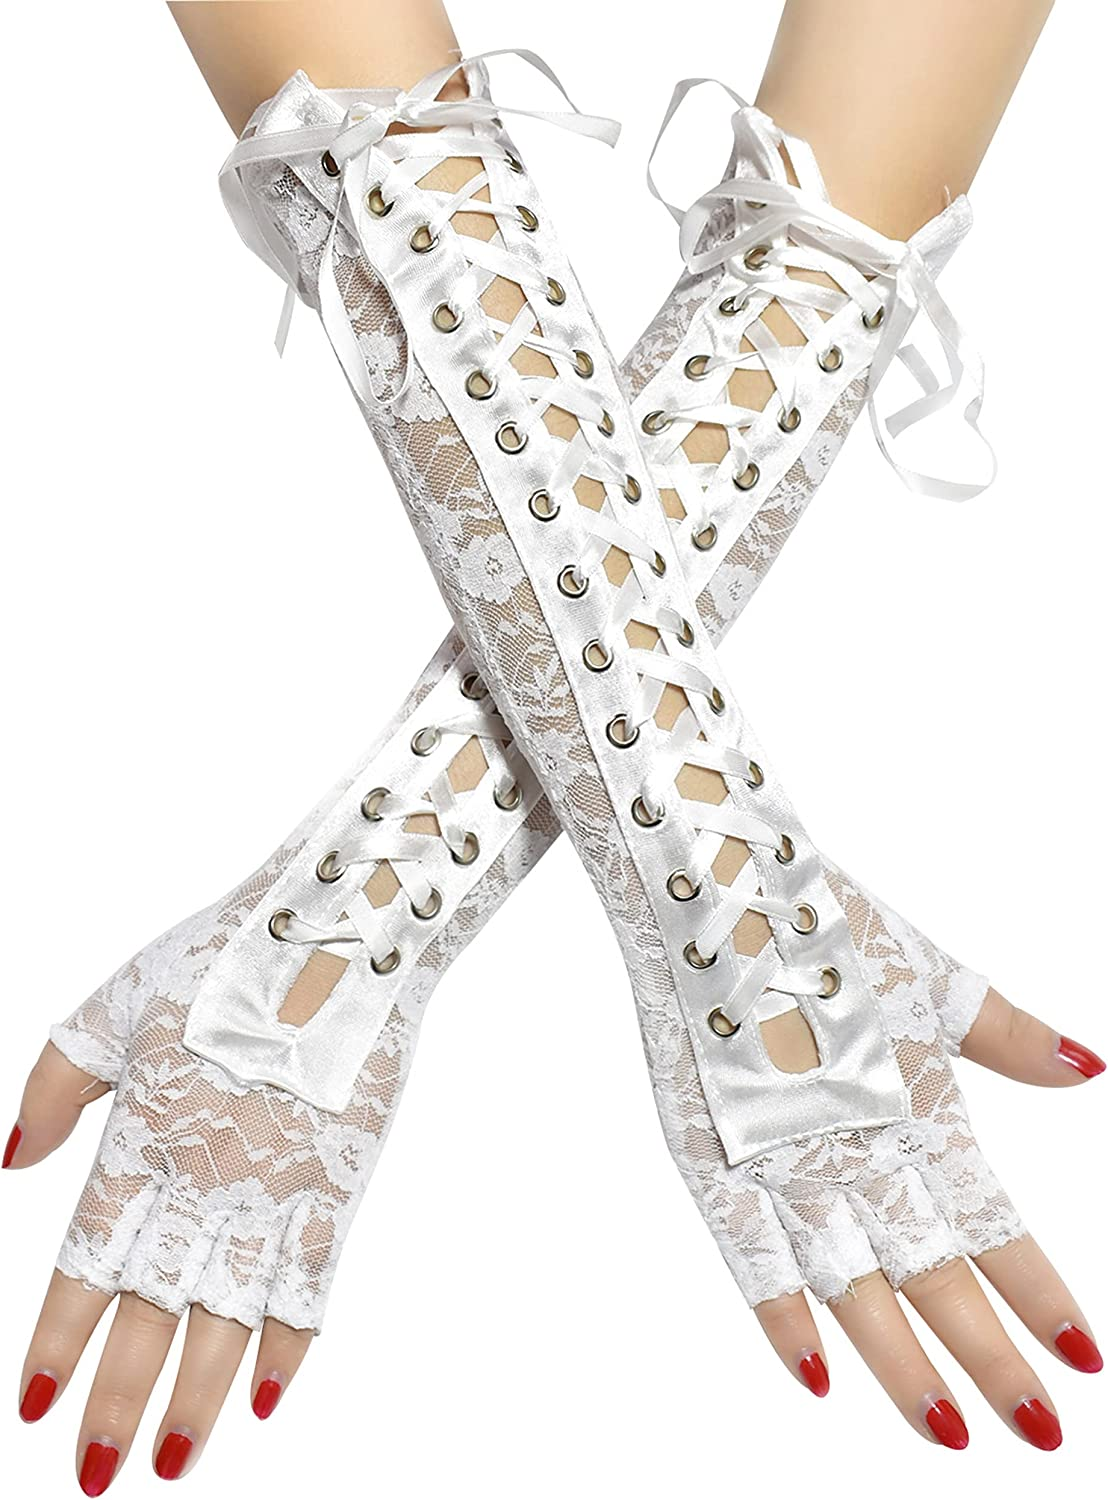 May&Maya Women's Lace Up Fingerless Gloves Long Elbow Gloves Lace-up Arm Warmer Halloween Party